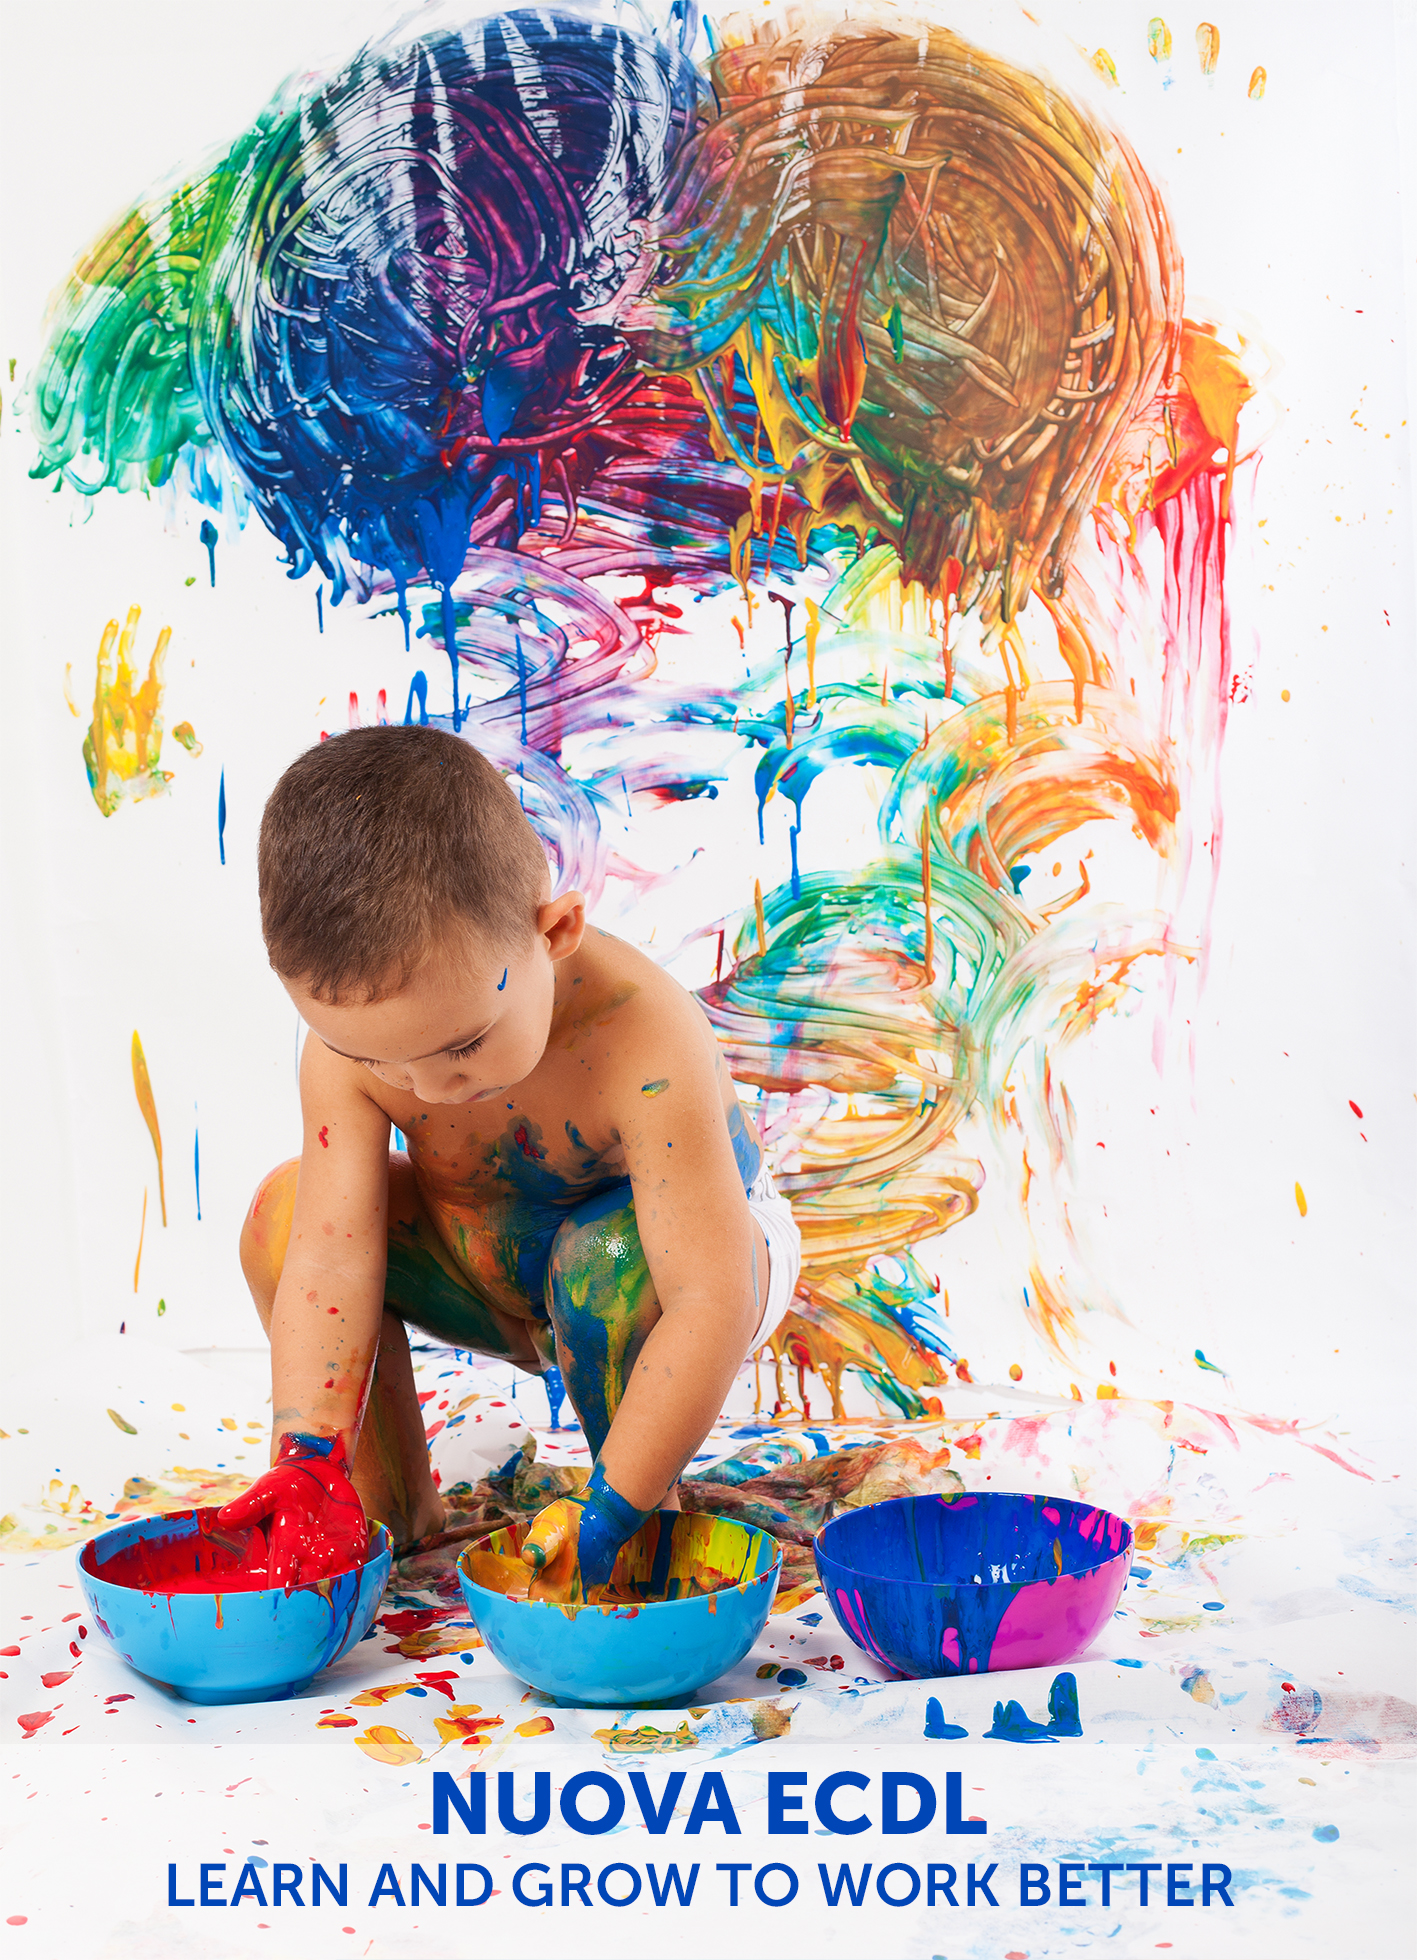 adorable kid paint stained representing the creativity and the freedom